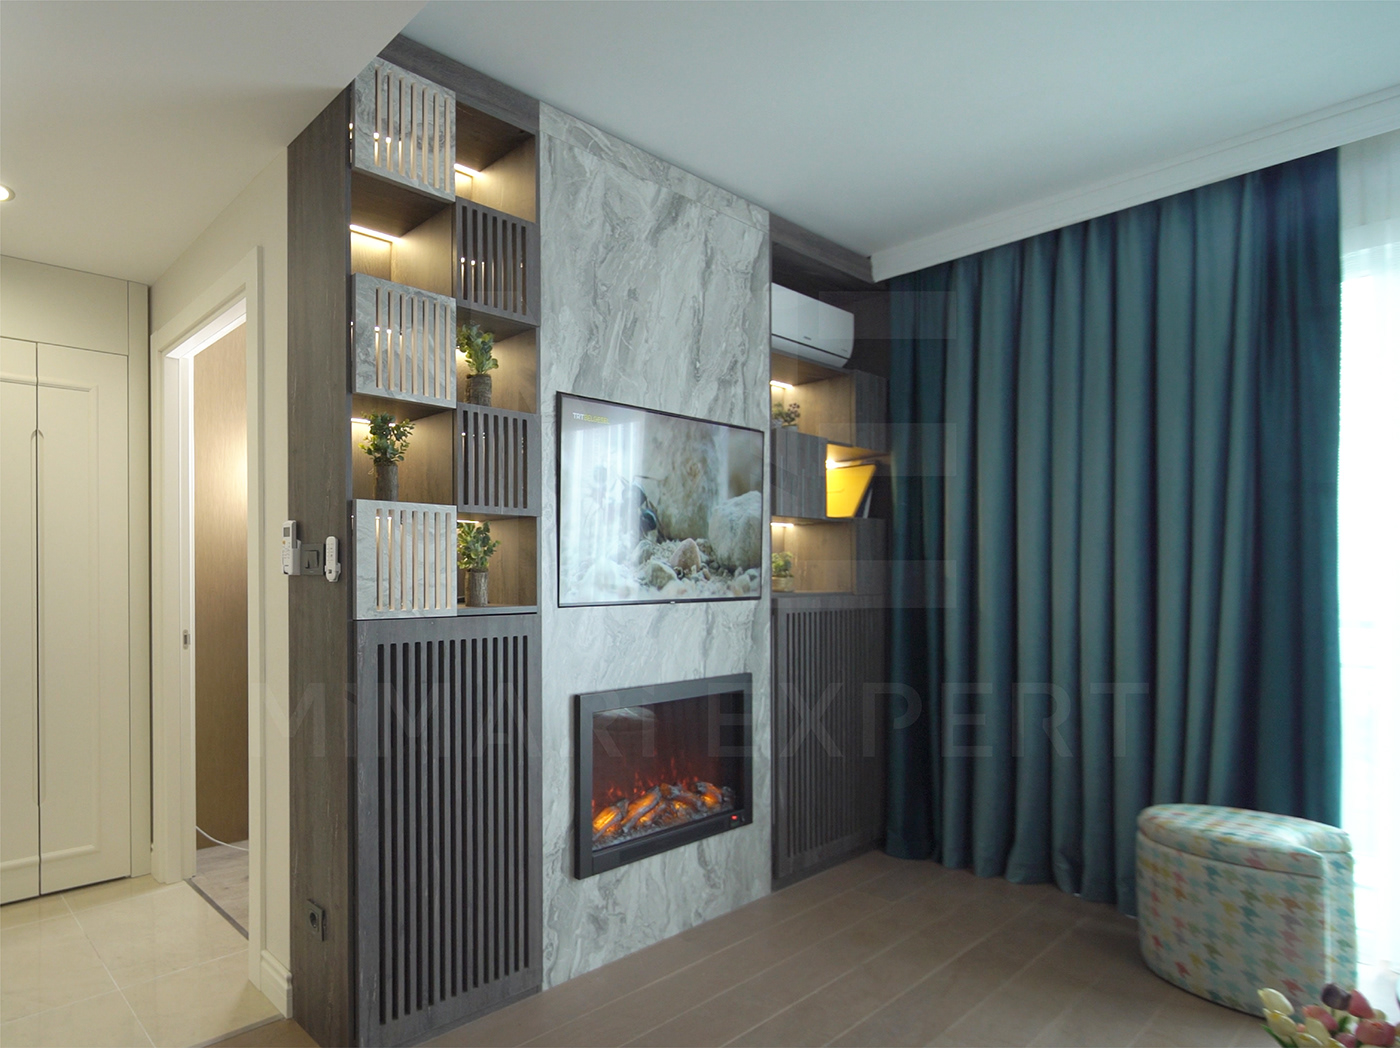 3d design apartment architecture decorations Engineering  Engineering Projects false ceilings furniture istanbul wall paper